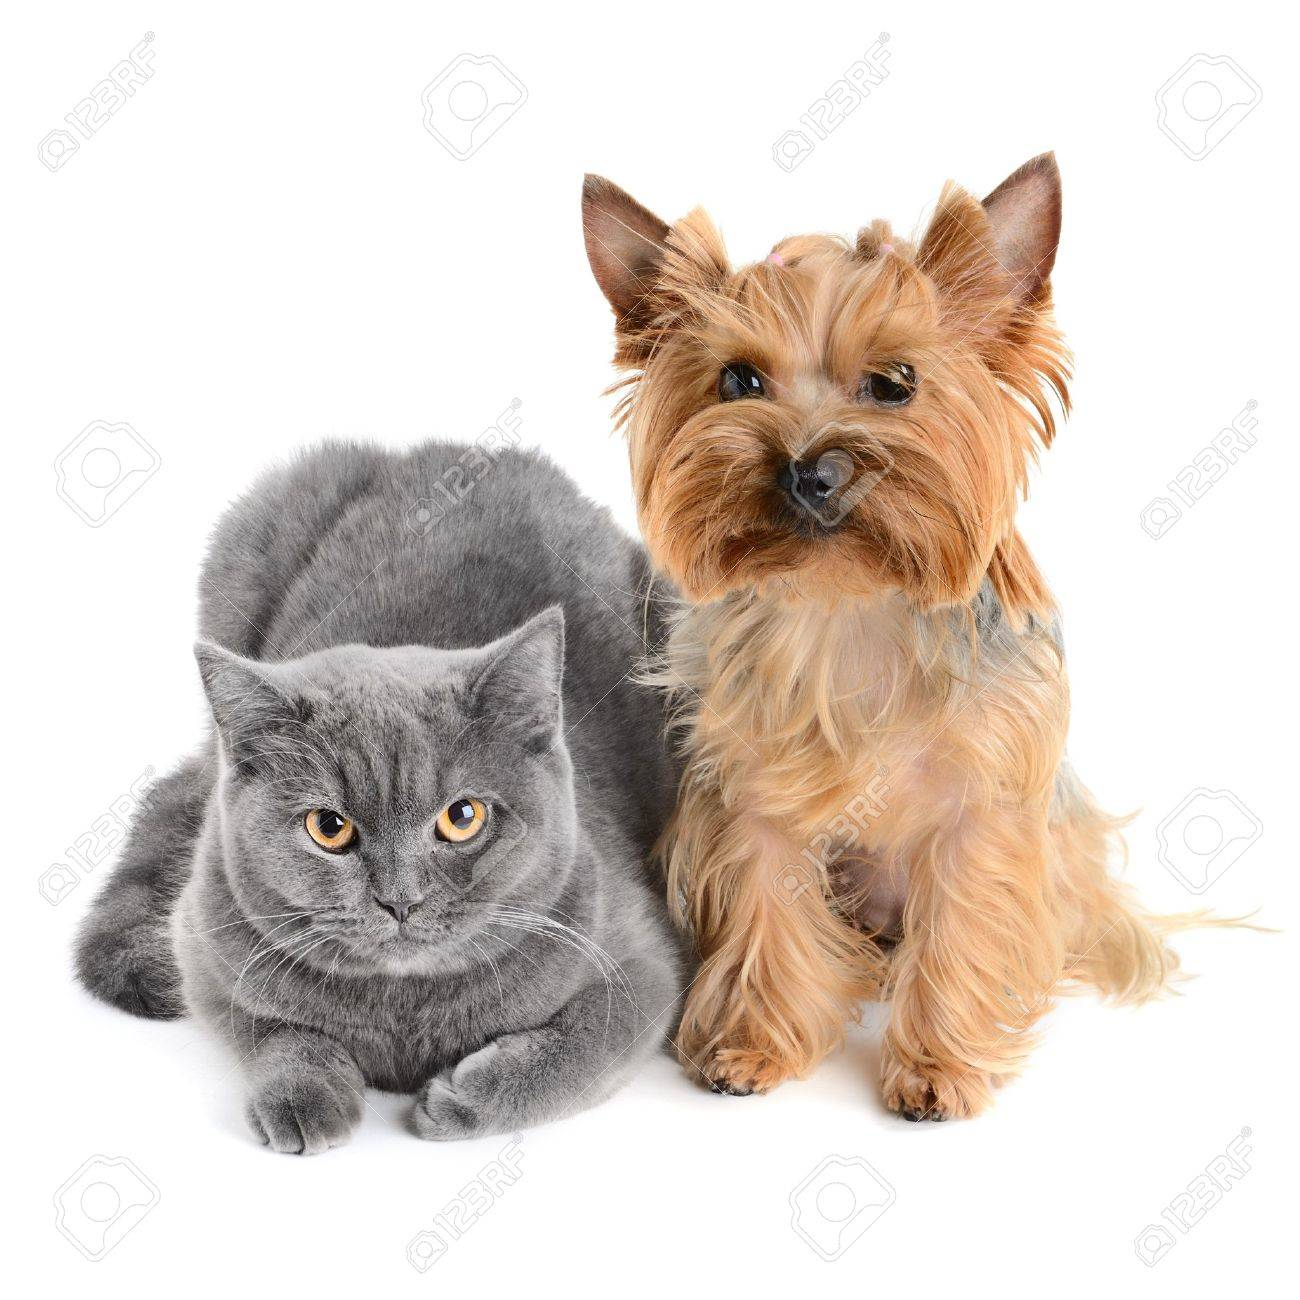 cat and dog isolated on white background Stock Photo - 11157952